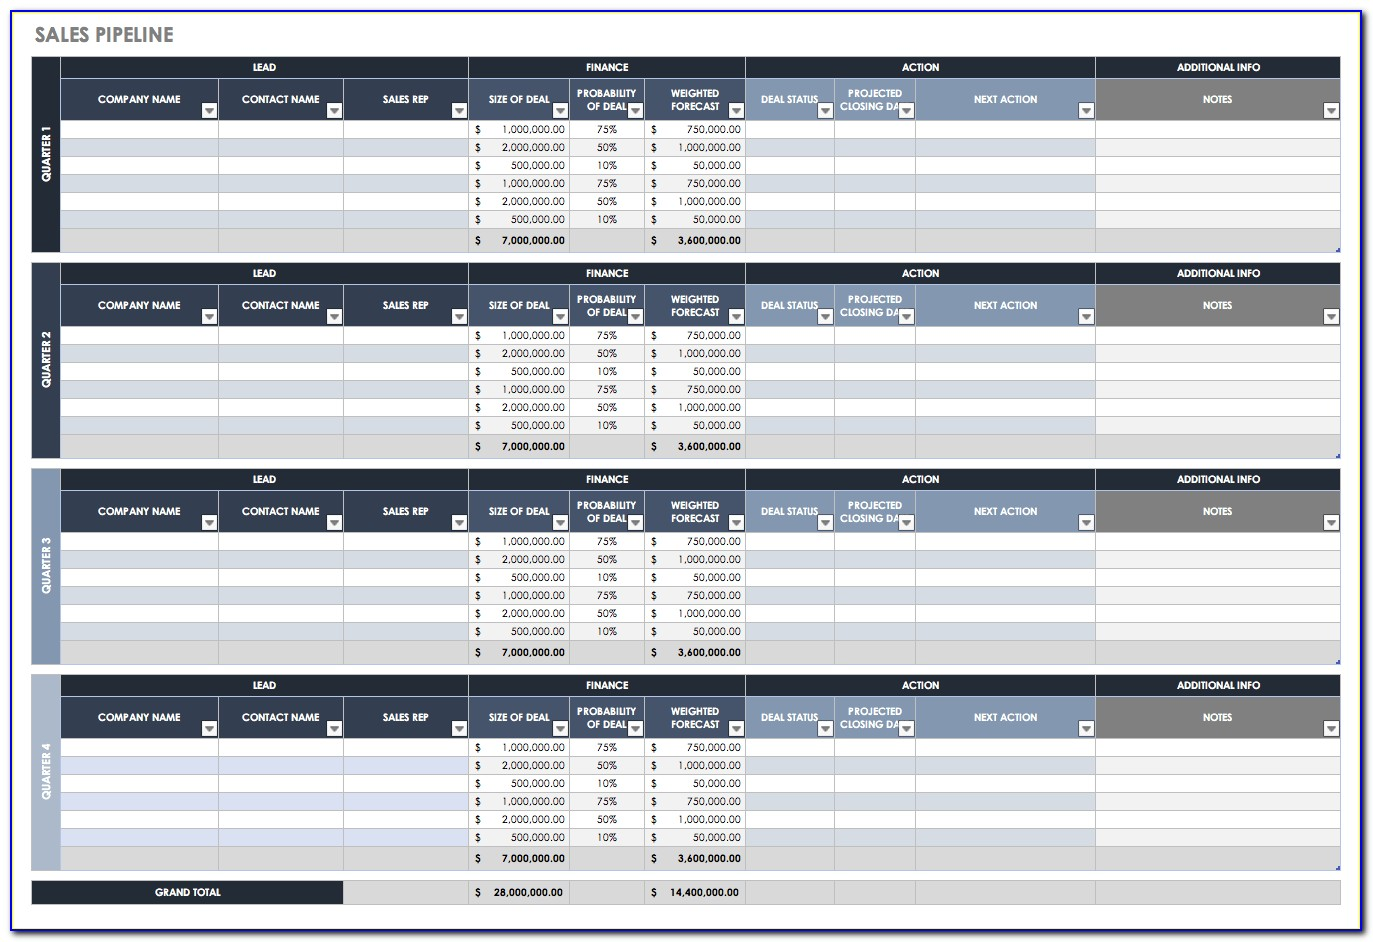 Sales Pipeline Management Excel Template Free